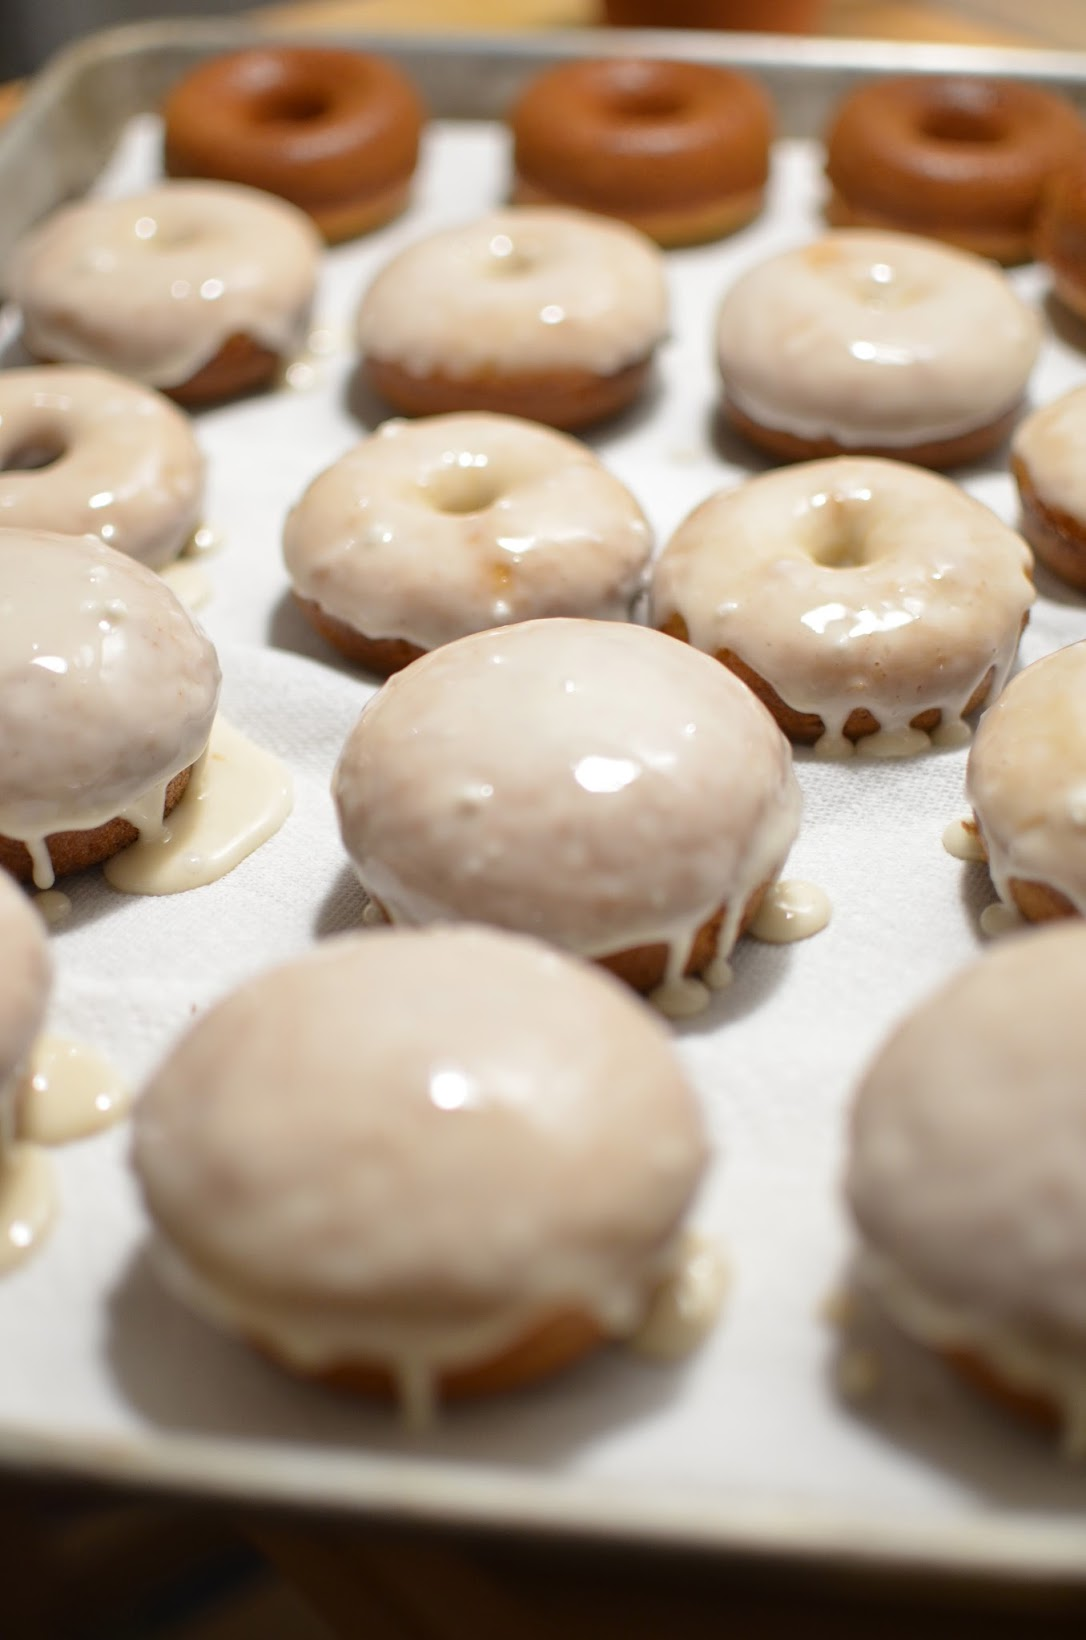 Cooking with Carlina, DIY donuts, baking donuts, Williams-Sonoma donut mix, Williams-Sonoma Salted Maple donuts, donut pan, donuts for the holidays, how to make your own donuts